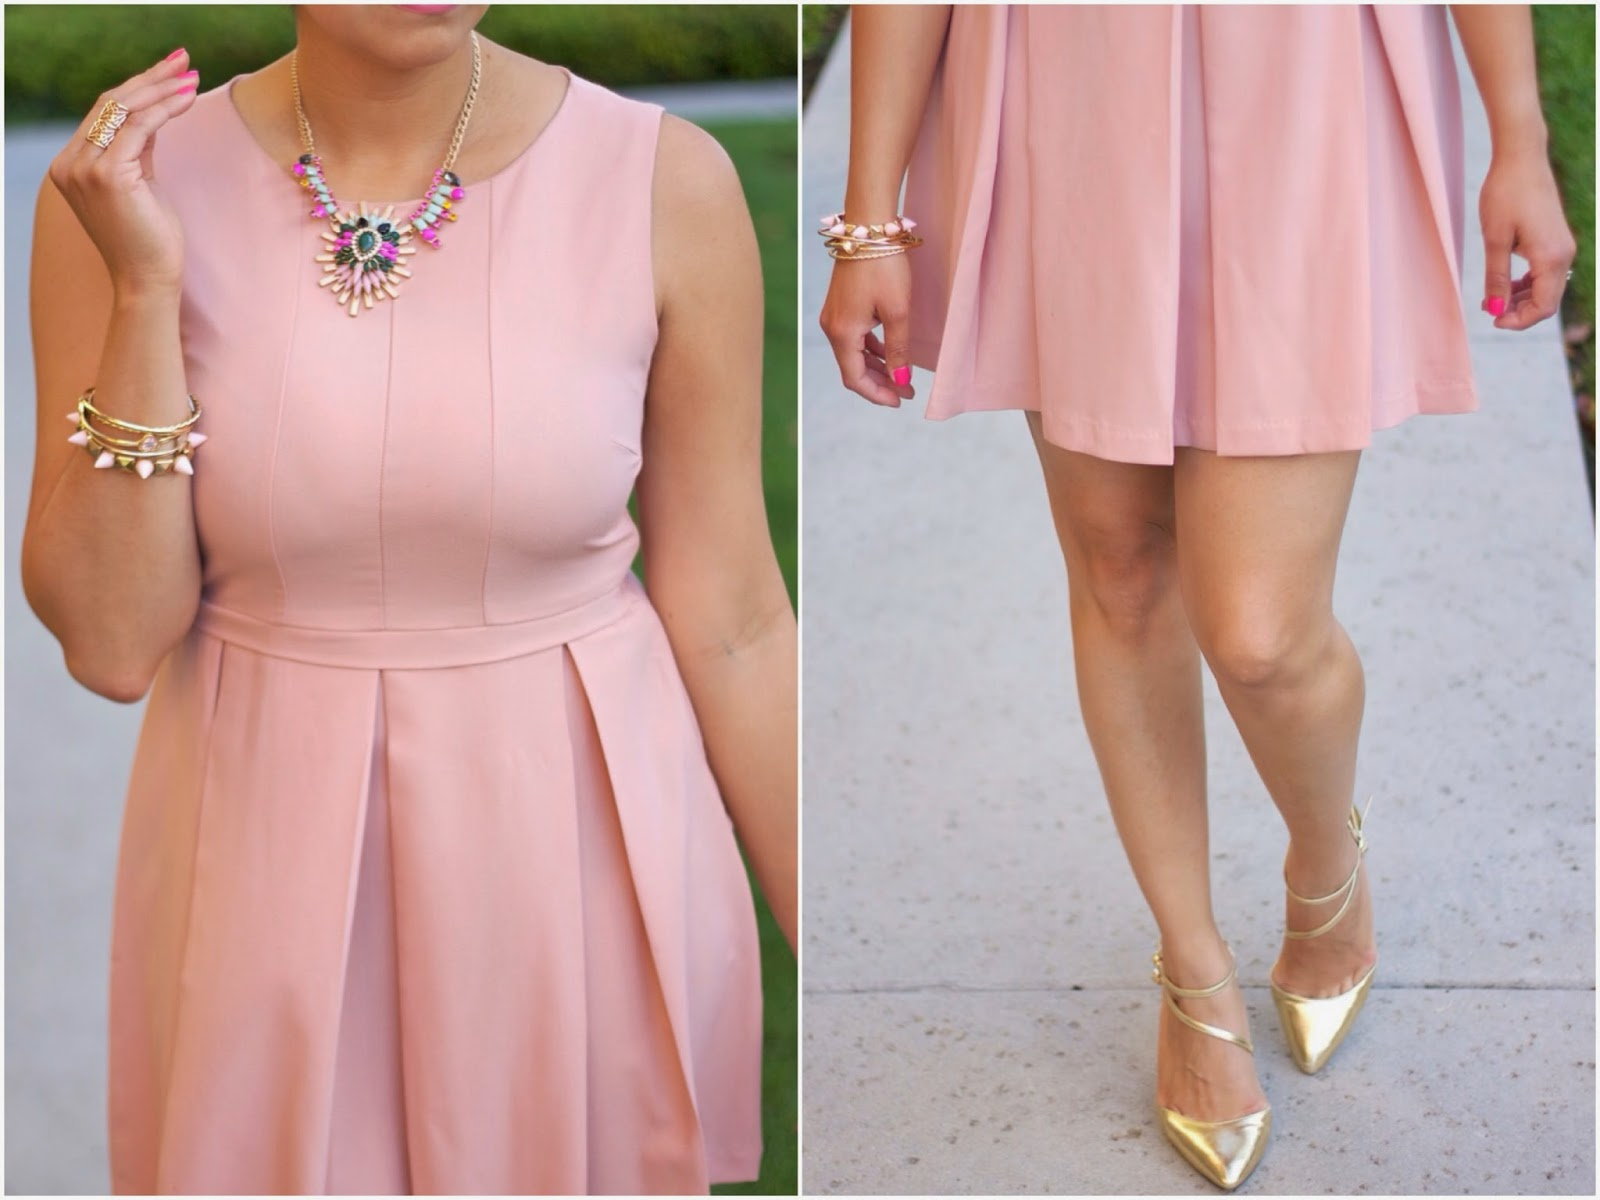 Gold Dress Shoes For Wedding 22 Good Pink with Gold Accessories